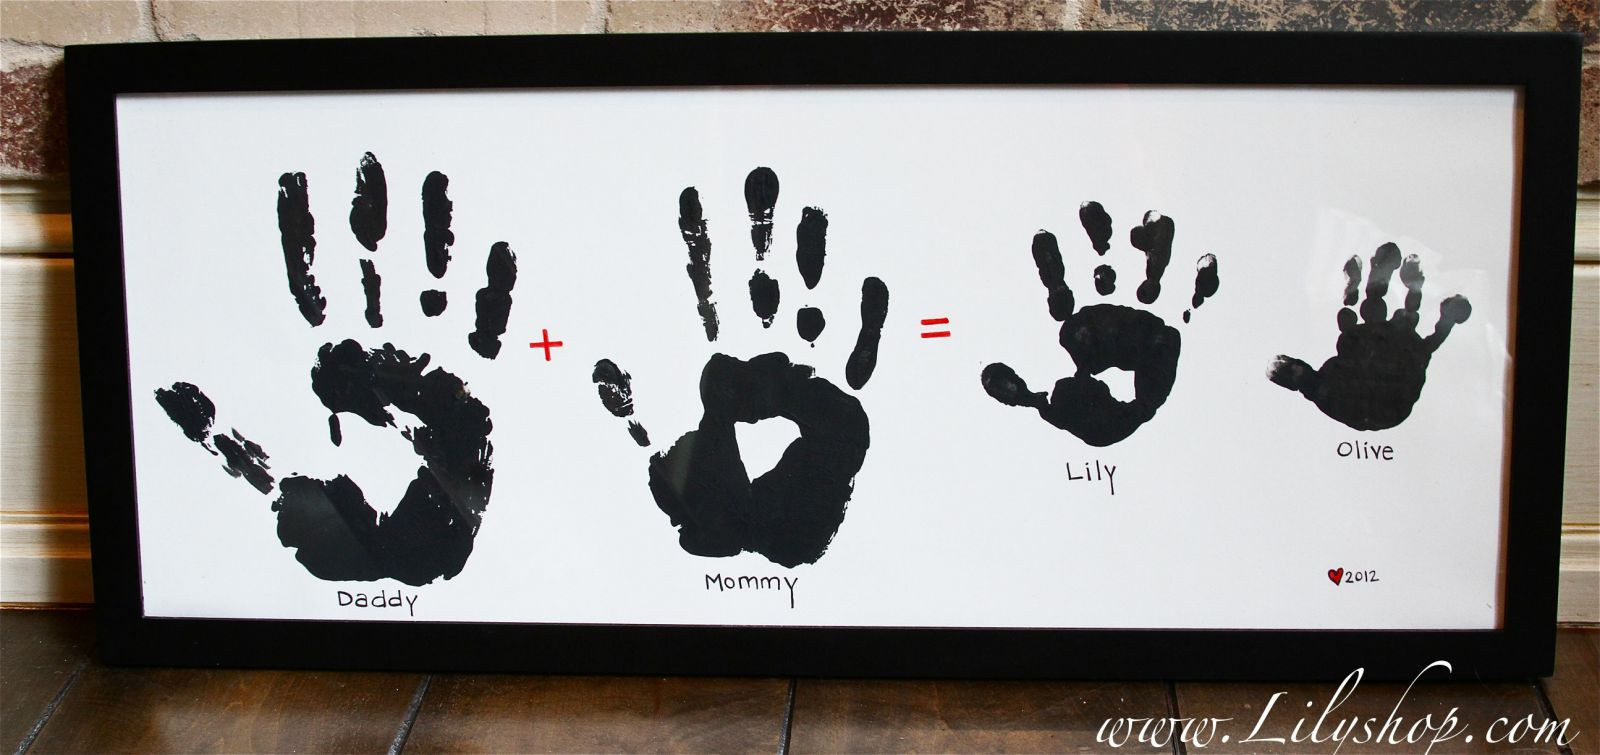 Best ideas about Baby Handprint Gift Ideas . Save or Pin 40 Fun and Creative Handprint Crafts Now.